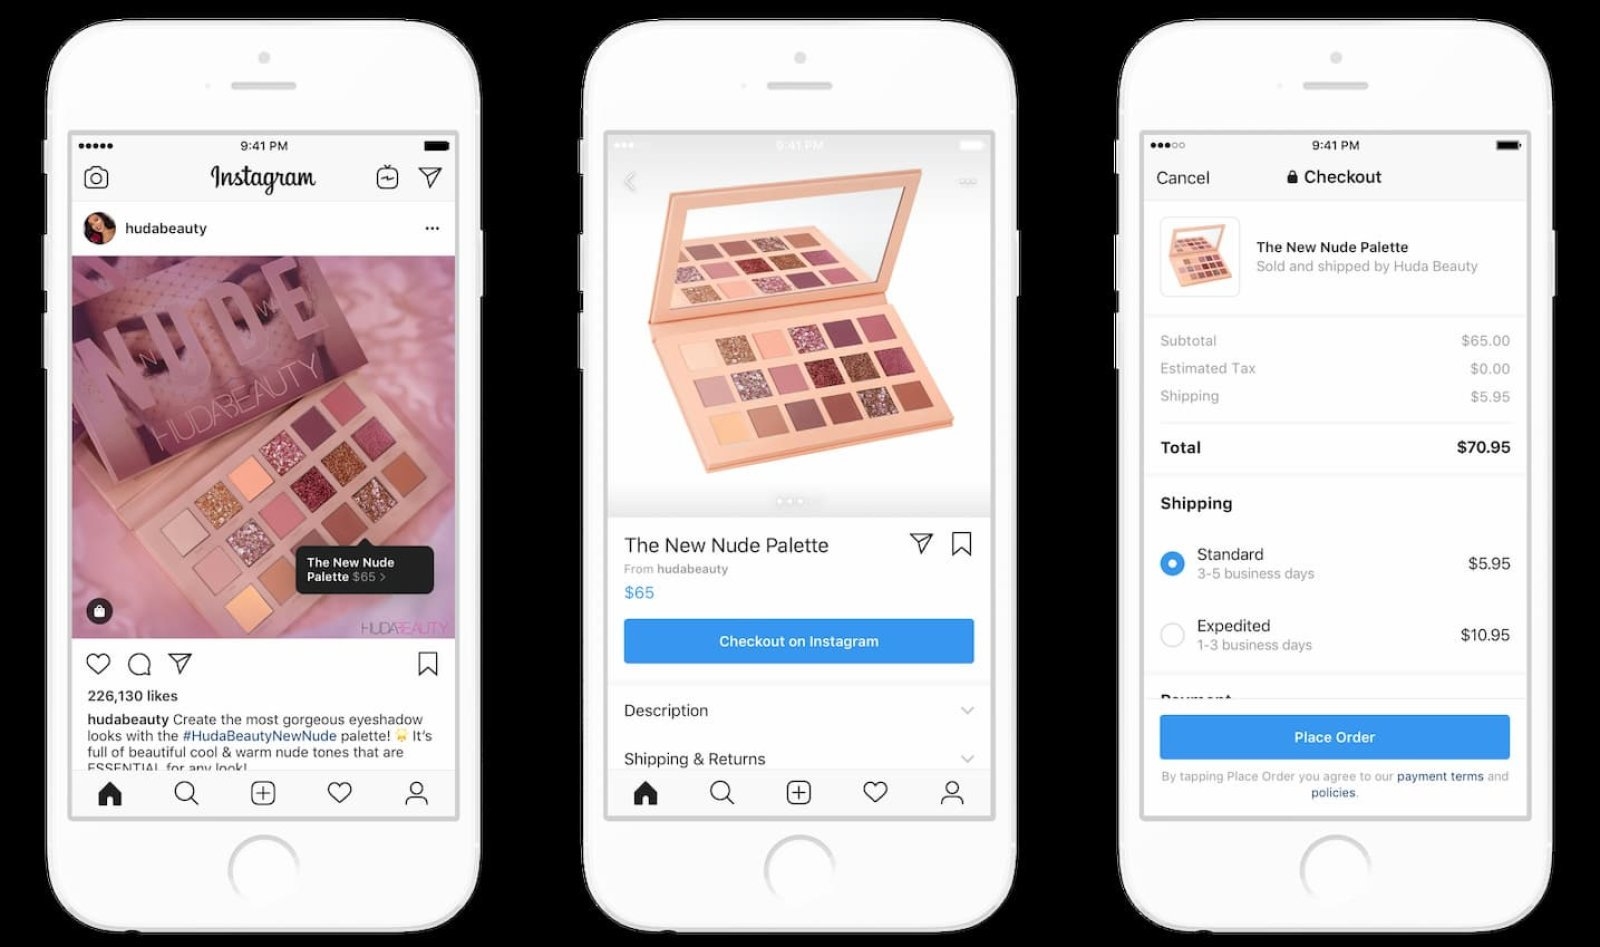 The Instagram app using React Native